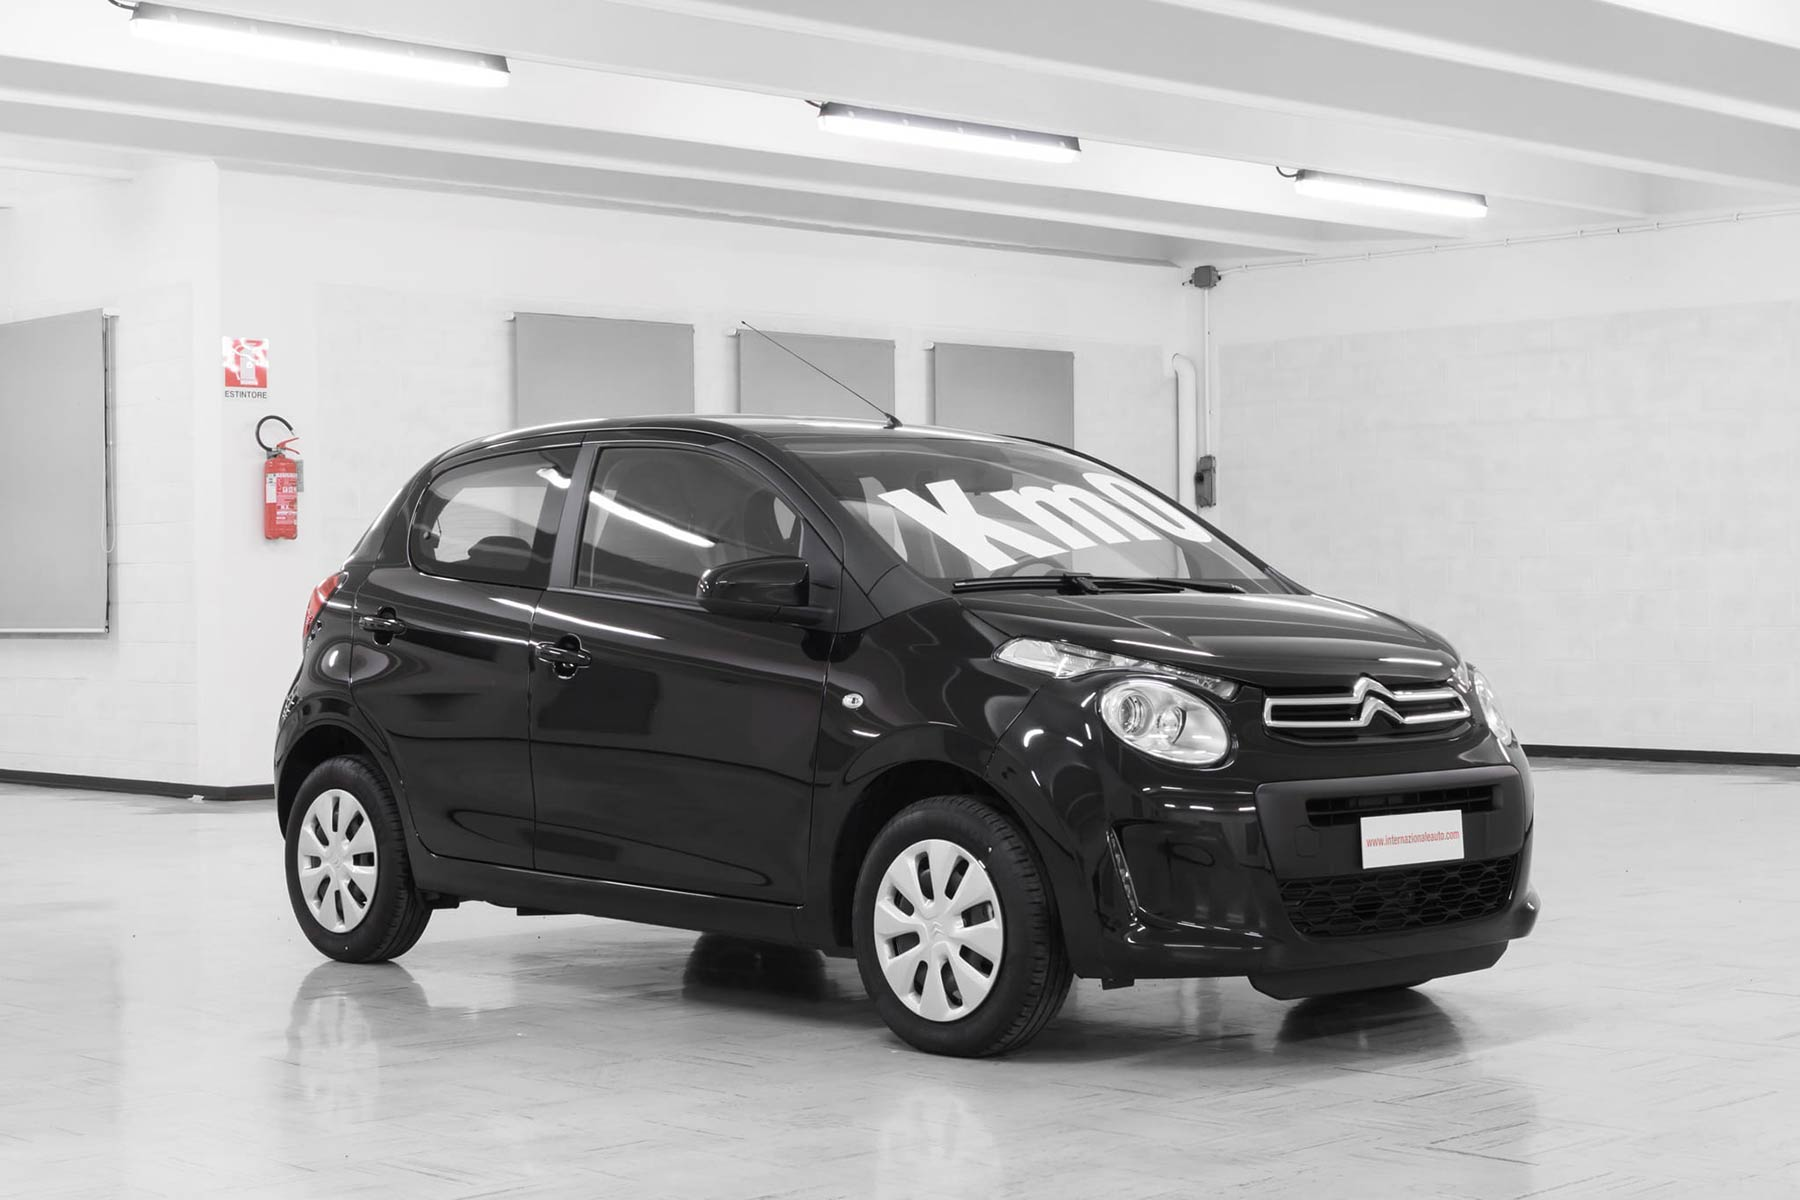 Citroen C1 Vti 68 5 Porte Feel Nero km0